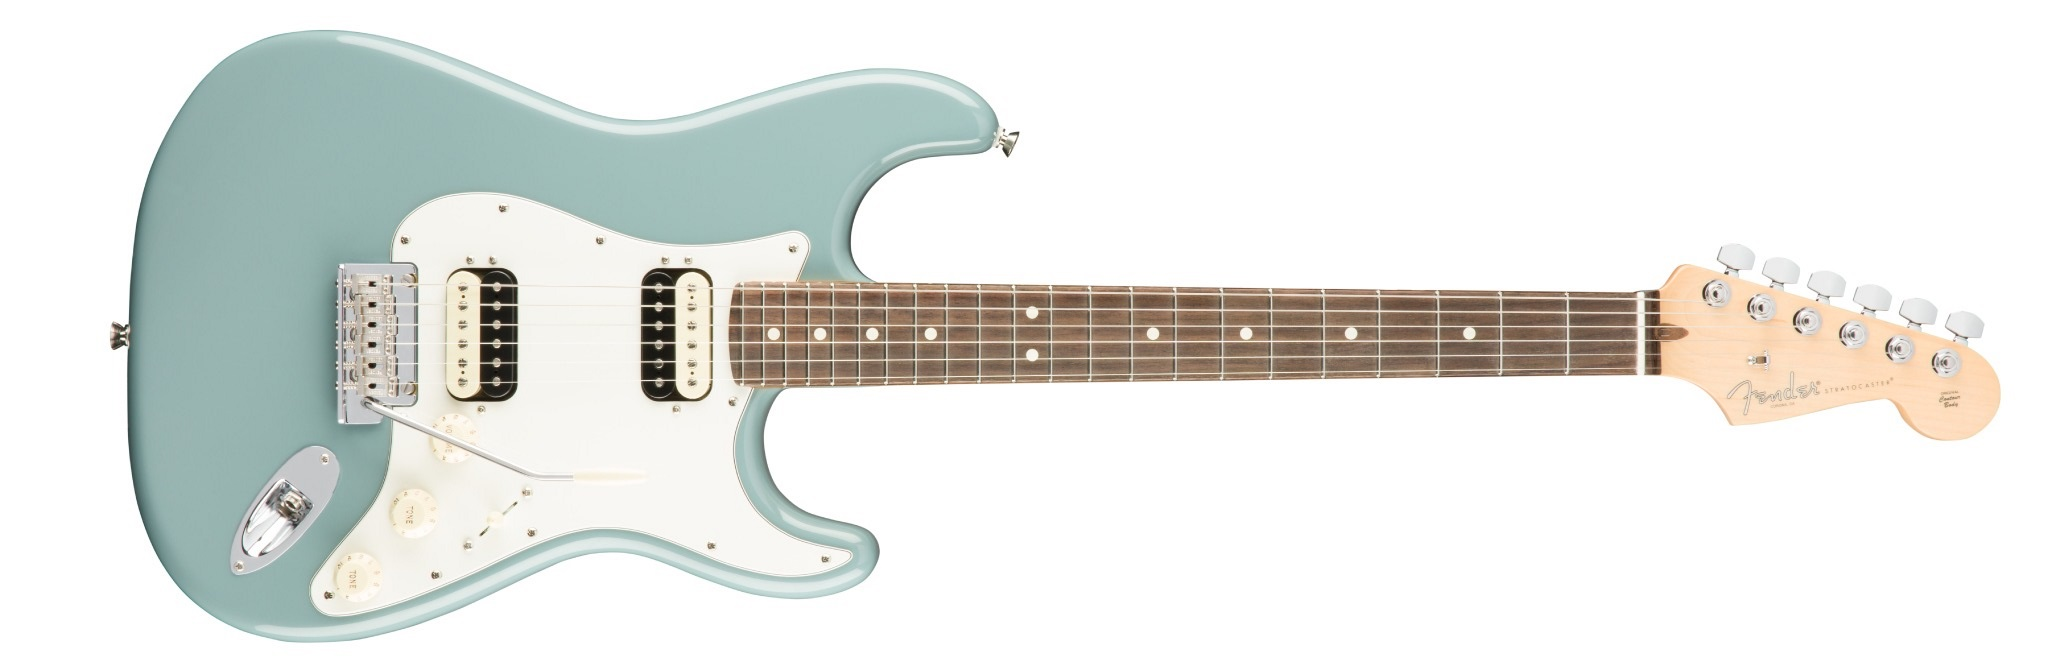 Fender American Pro Stratocaster HH Shawbuckers RW SNG